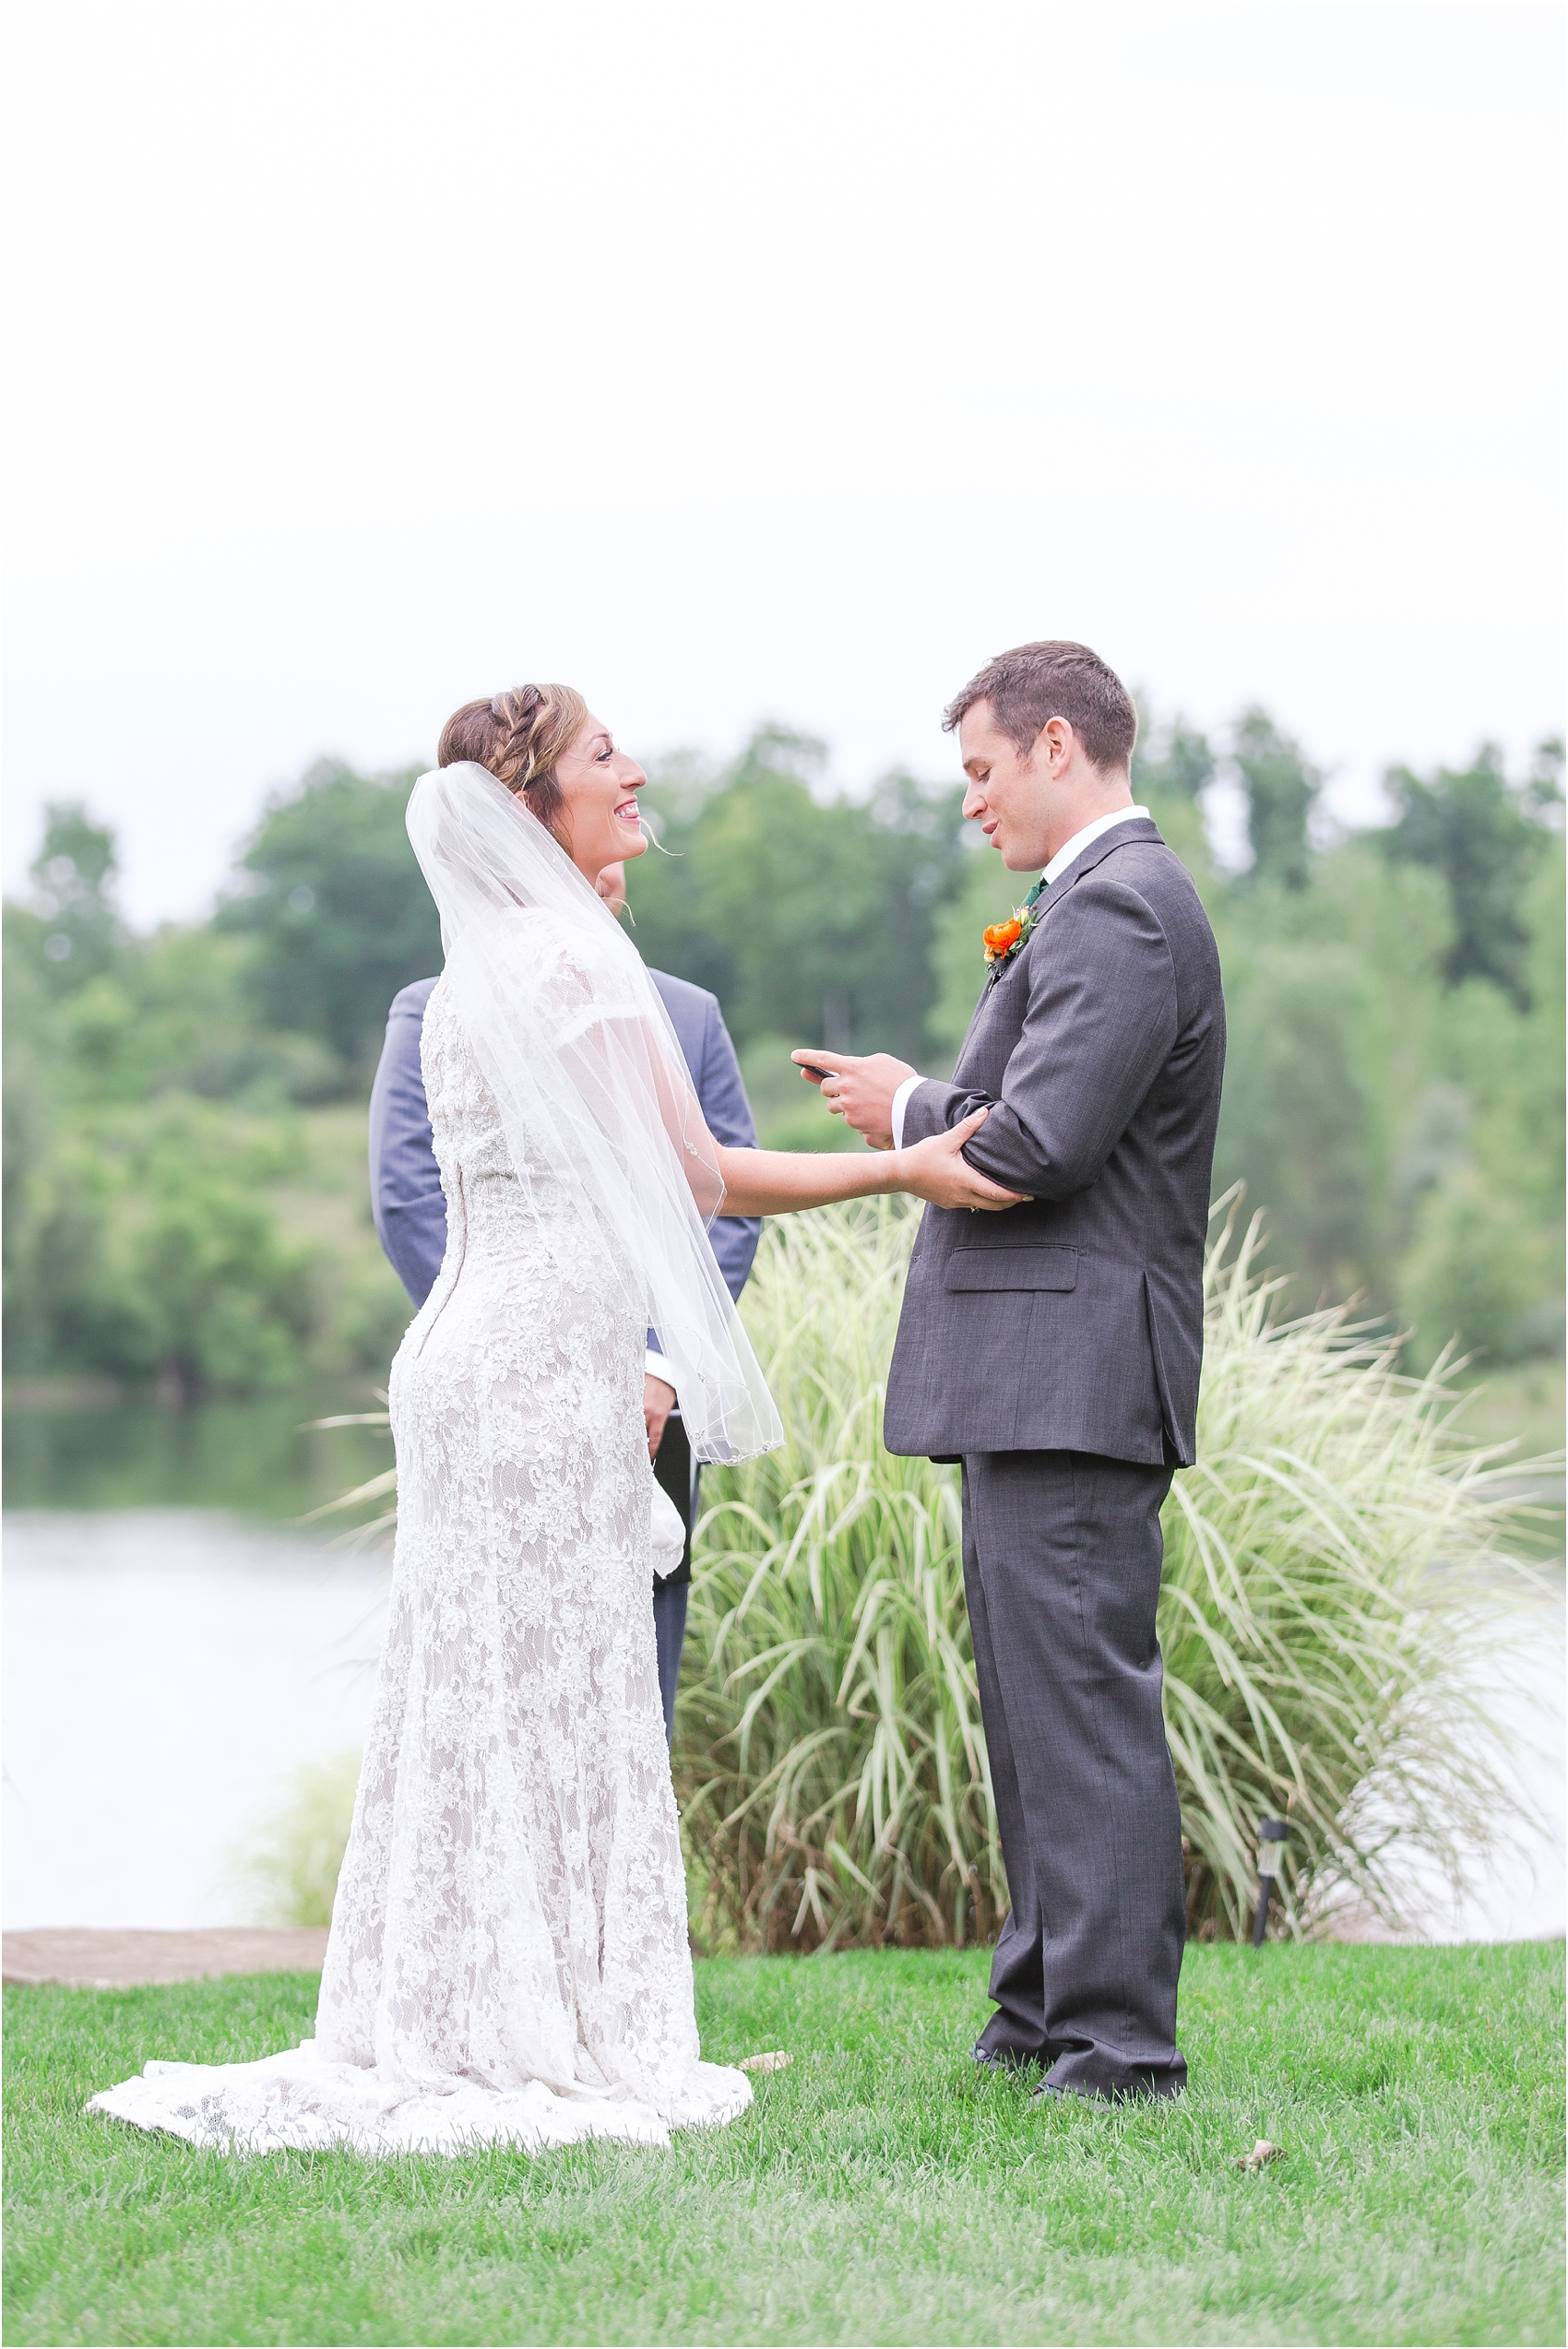 romantic-intimate-backyard-wedding-photos-at-private-estate-in-ann-arbor-mi-by-courtney-carolyn-photography_0105.jpg